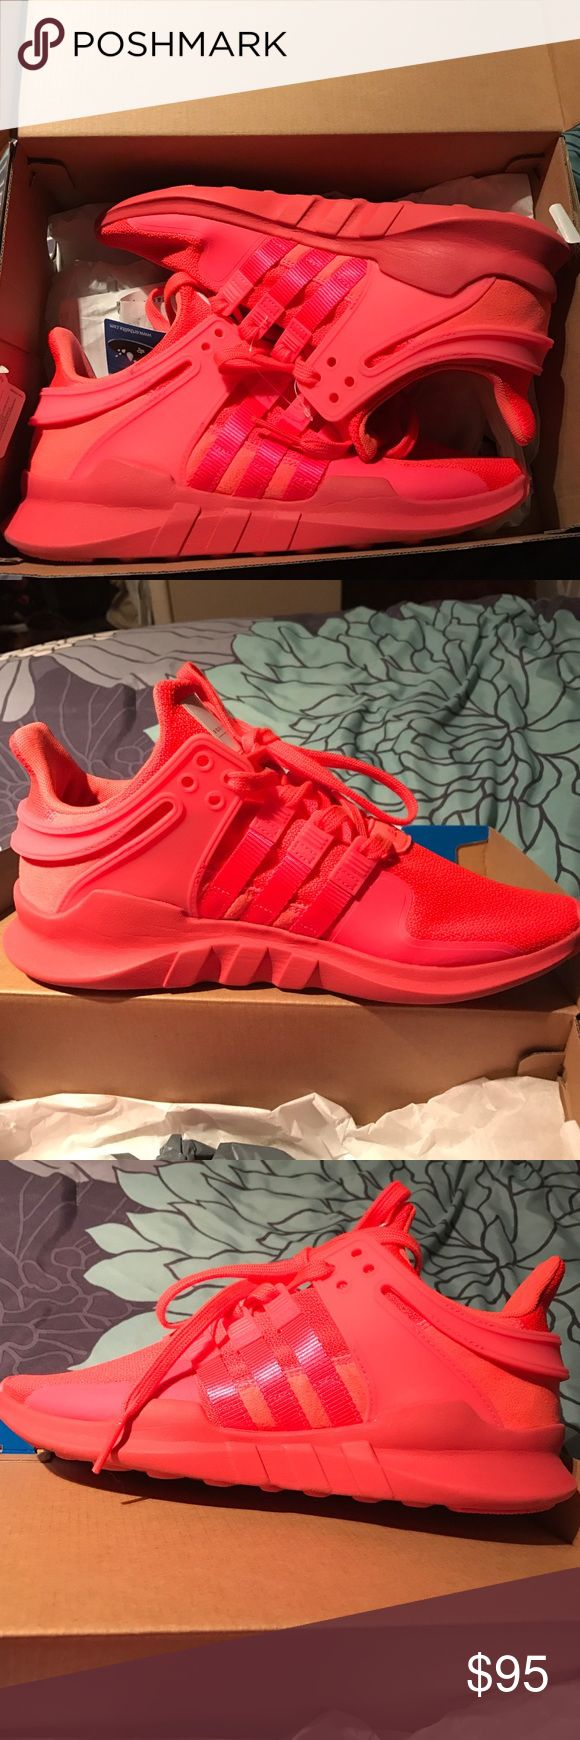 Adidas EQT support ADV. W size 8 1/2. Worn once Only wore these once and they look just about flawless. Women size 8.5 and still have the box. Purchased from footlocker. Tag is inside the box but not attached to shoe. Color (Turbo) is hard to find! Adidas Shoes Sneakers